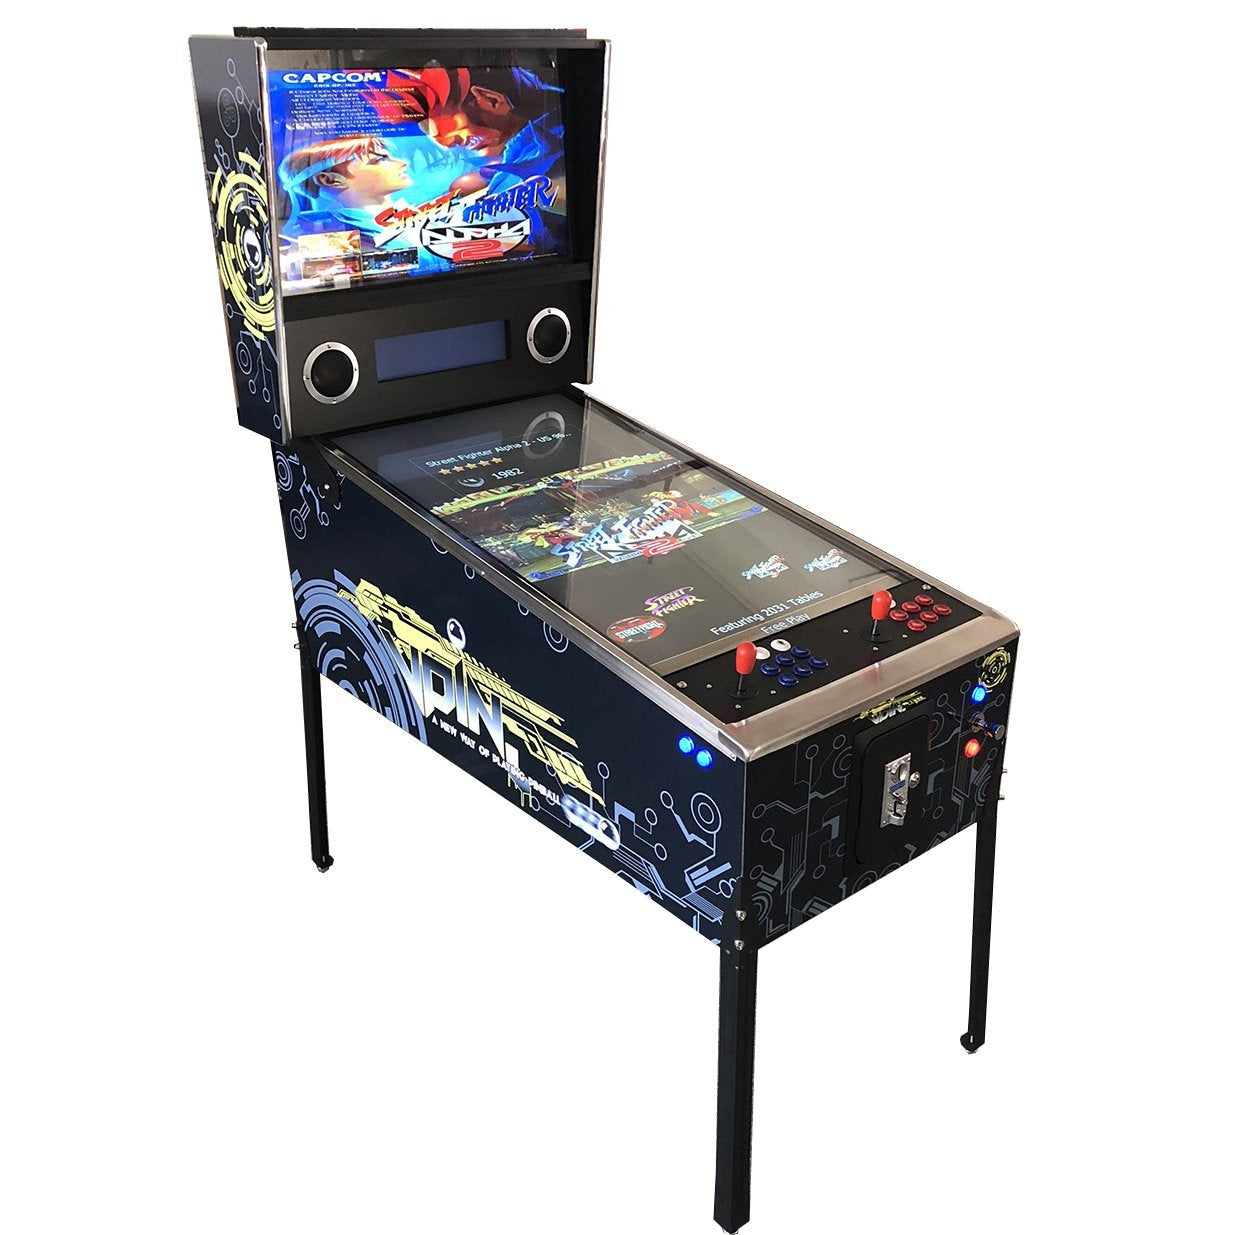 "2 Player Classic Pinball Machine | 1031 Pinball Titles and 998 Classic Arcade Games | 43"" and 32"" LCD Screens"